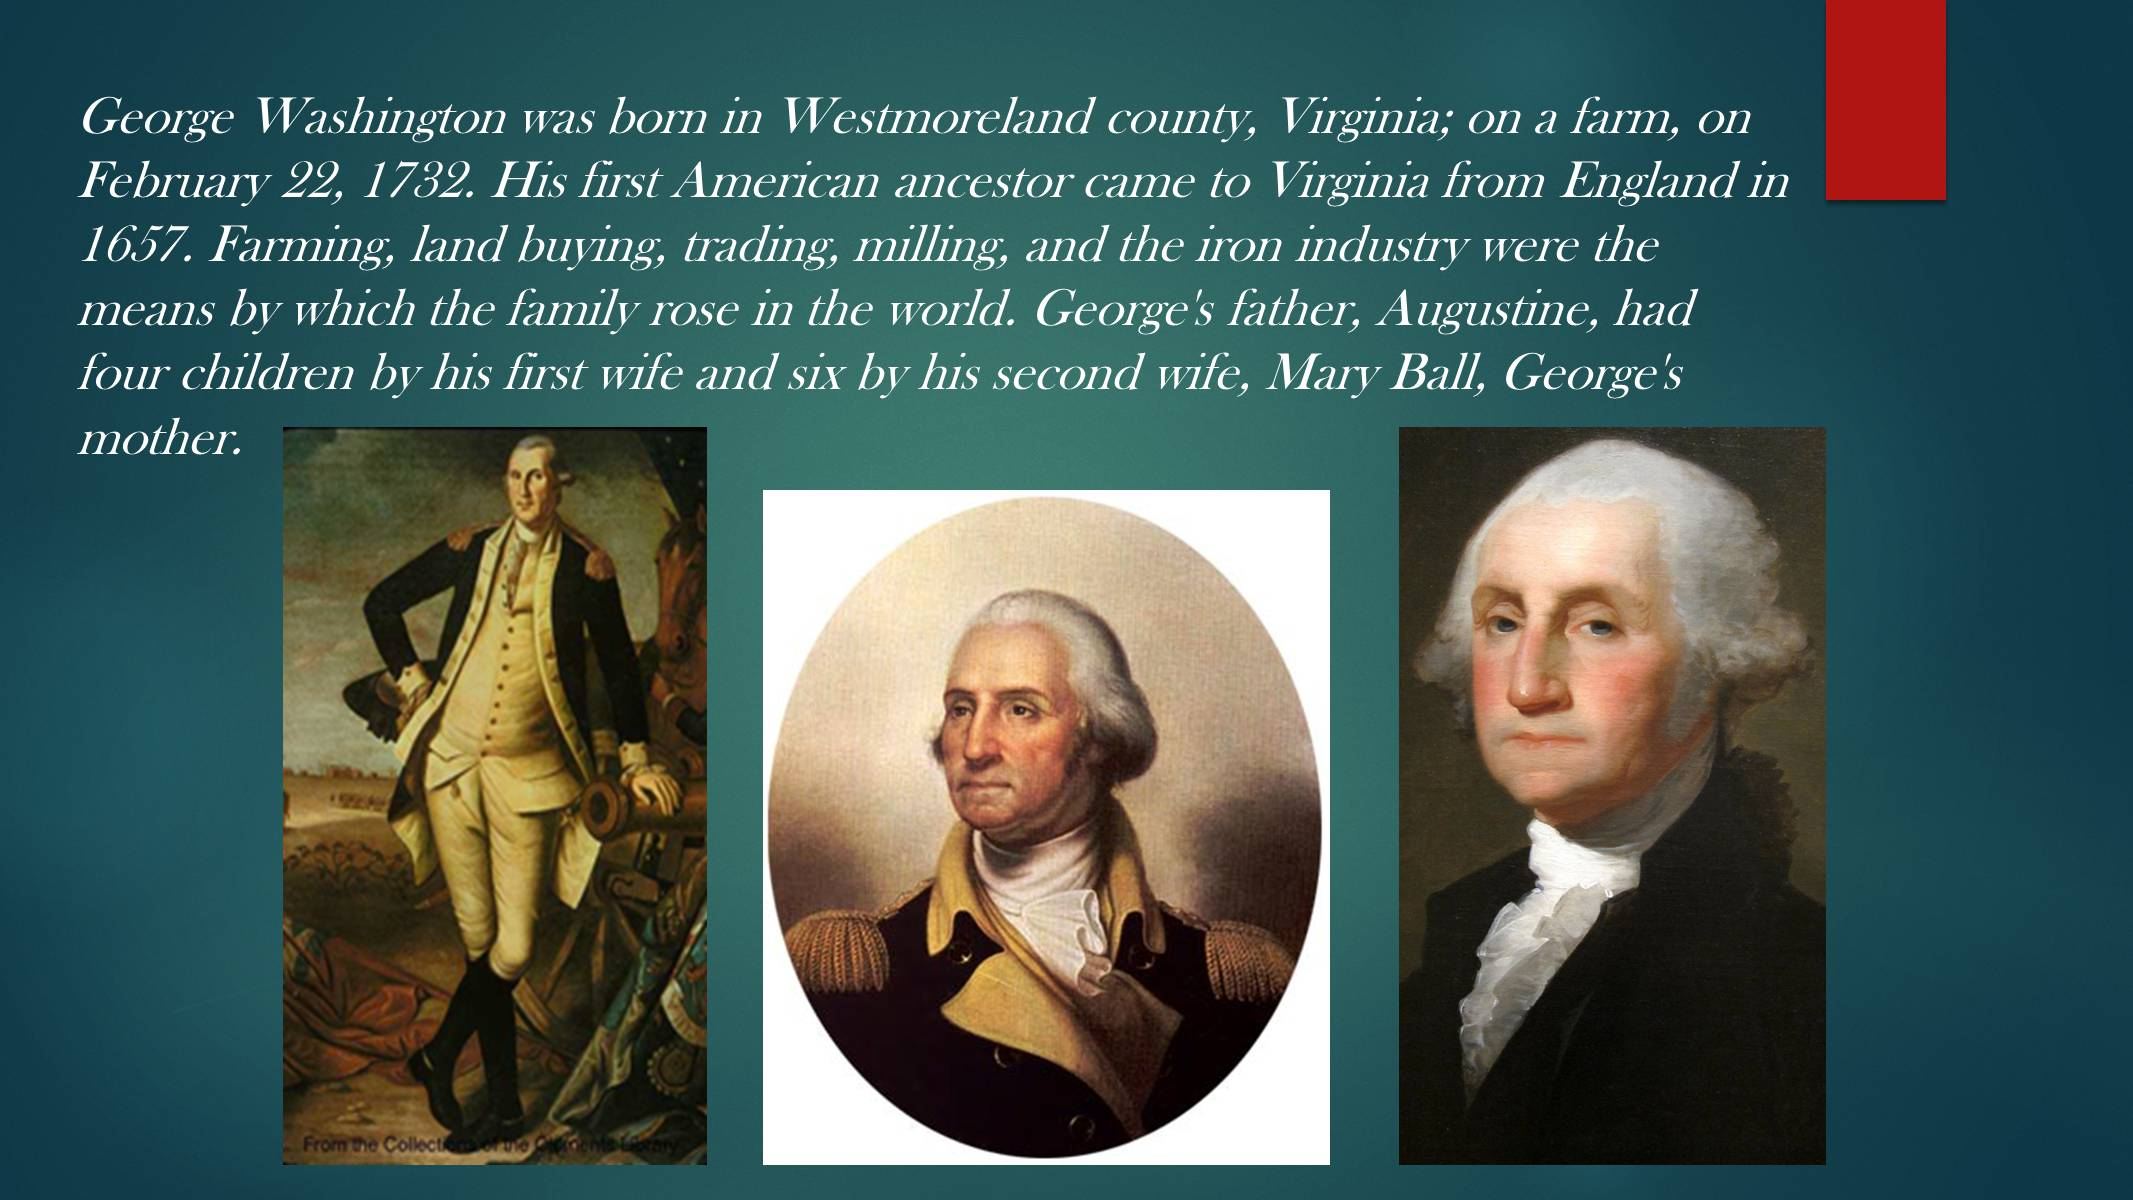 a biography and life work of george washington born in westmoreland county Youth and family summary george washington, the first president of the united states, was born on february 22, 1732, in westmoreland county, virginia.